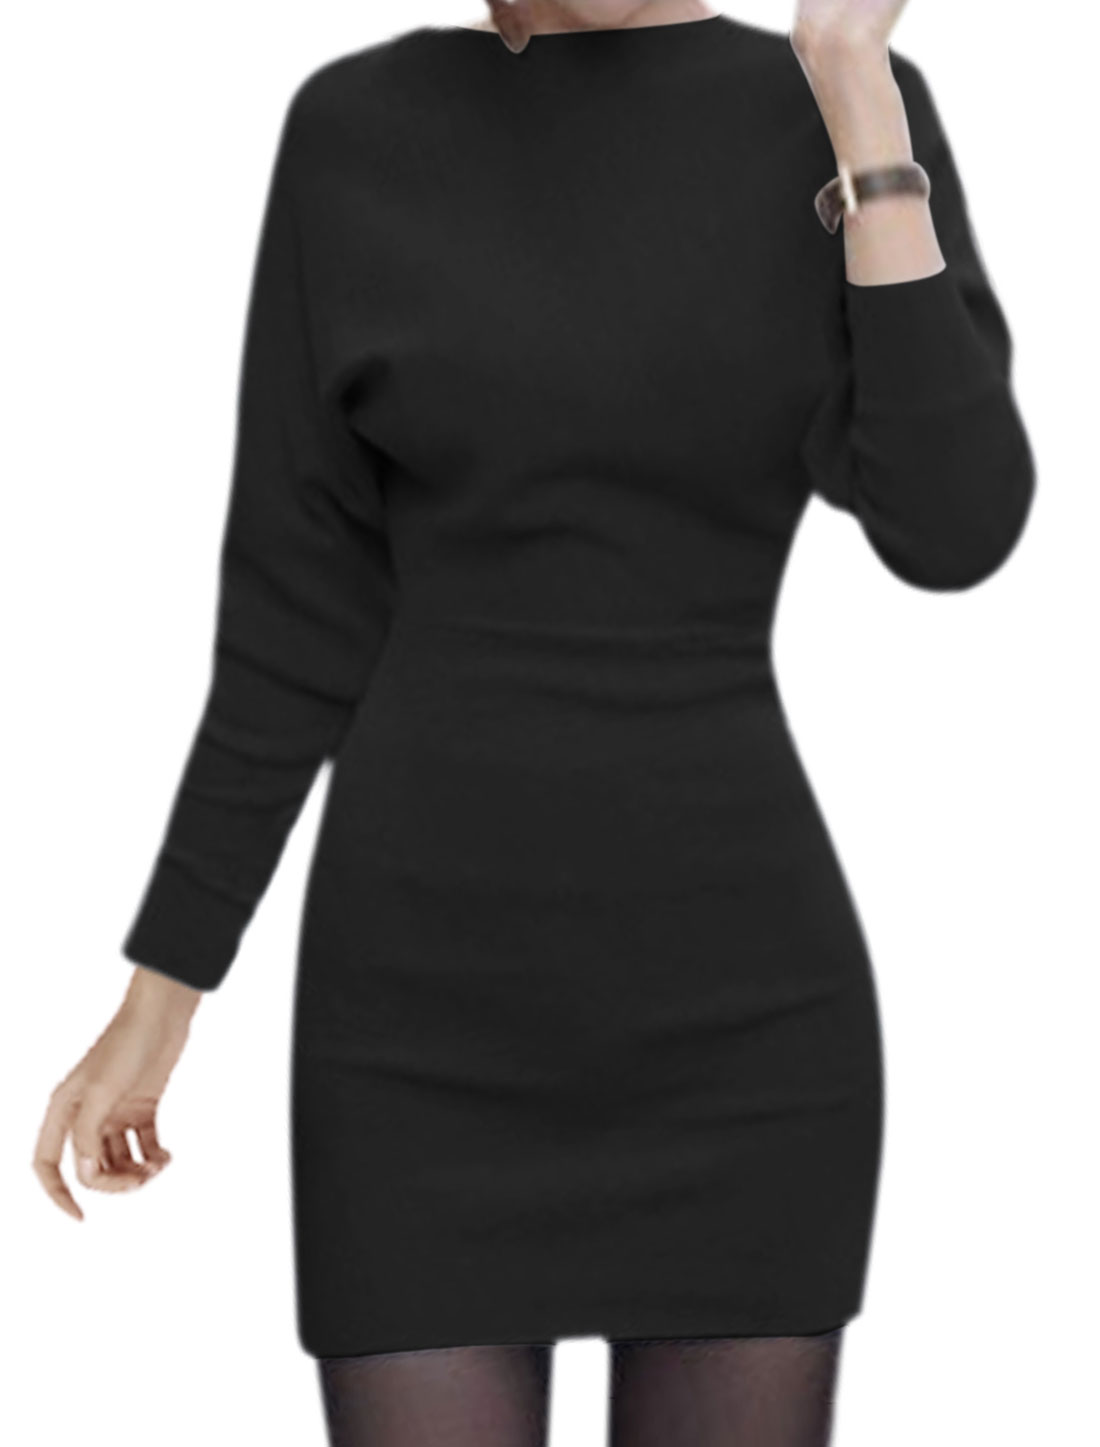 Women Boat Neck Batwing Sleeves Mini Blouson Dress Black S